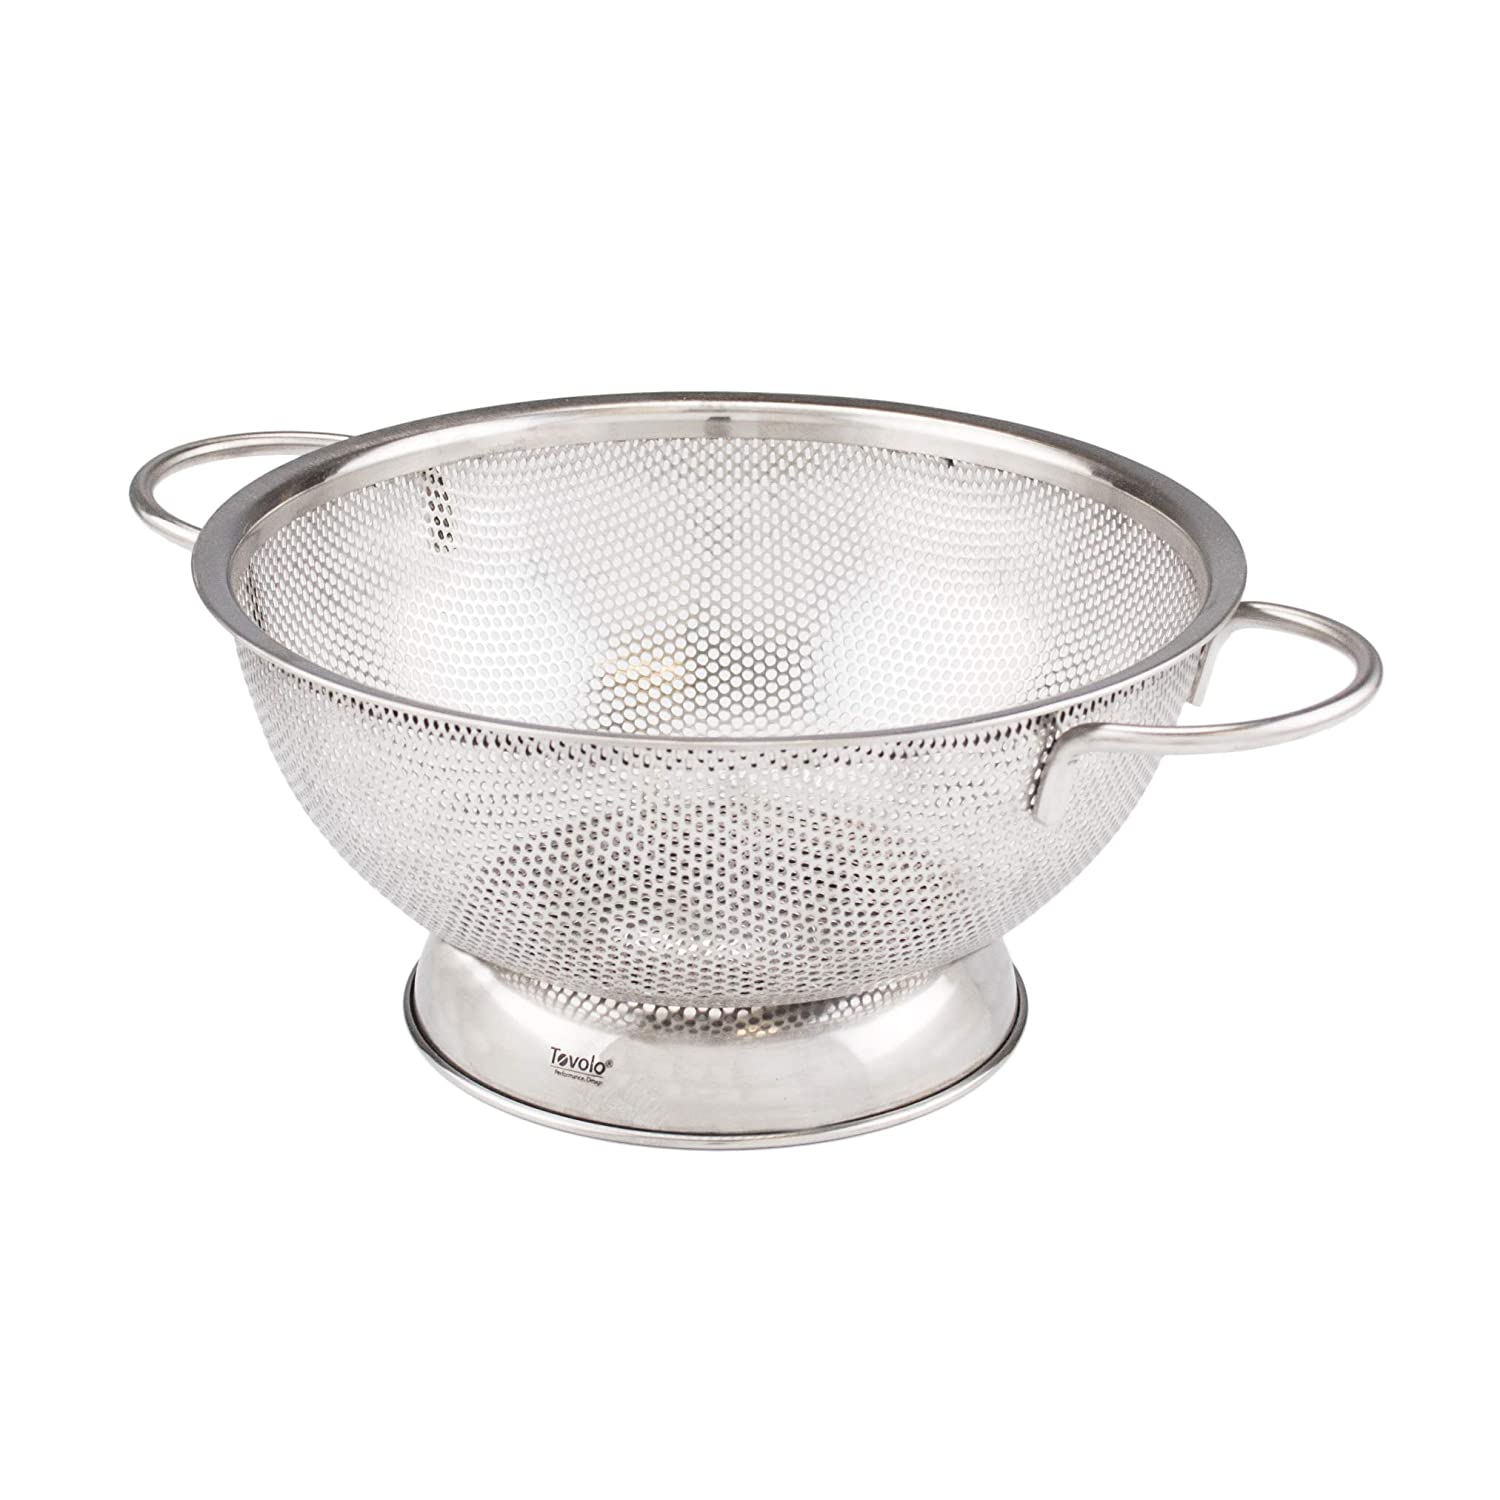 Tovolo Stainless Steel Colander, Looped Handles, Rust Preventing, 2 Quart